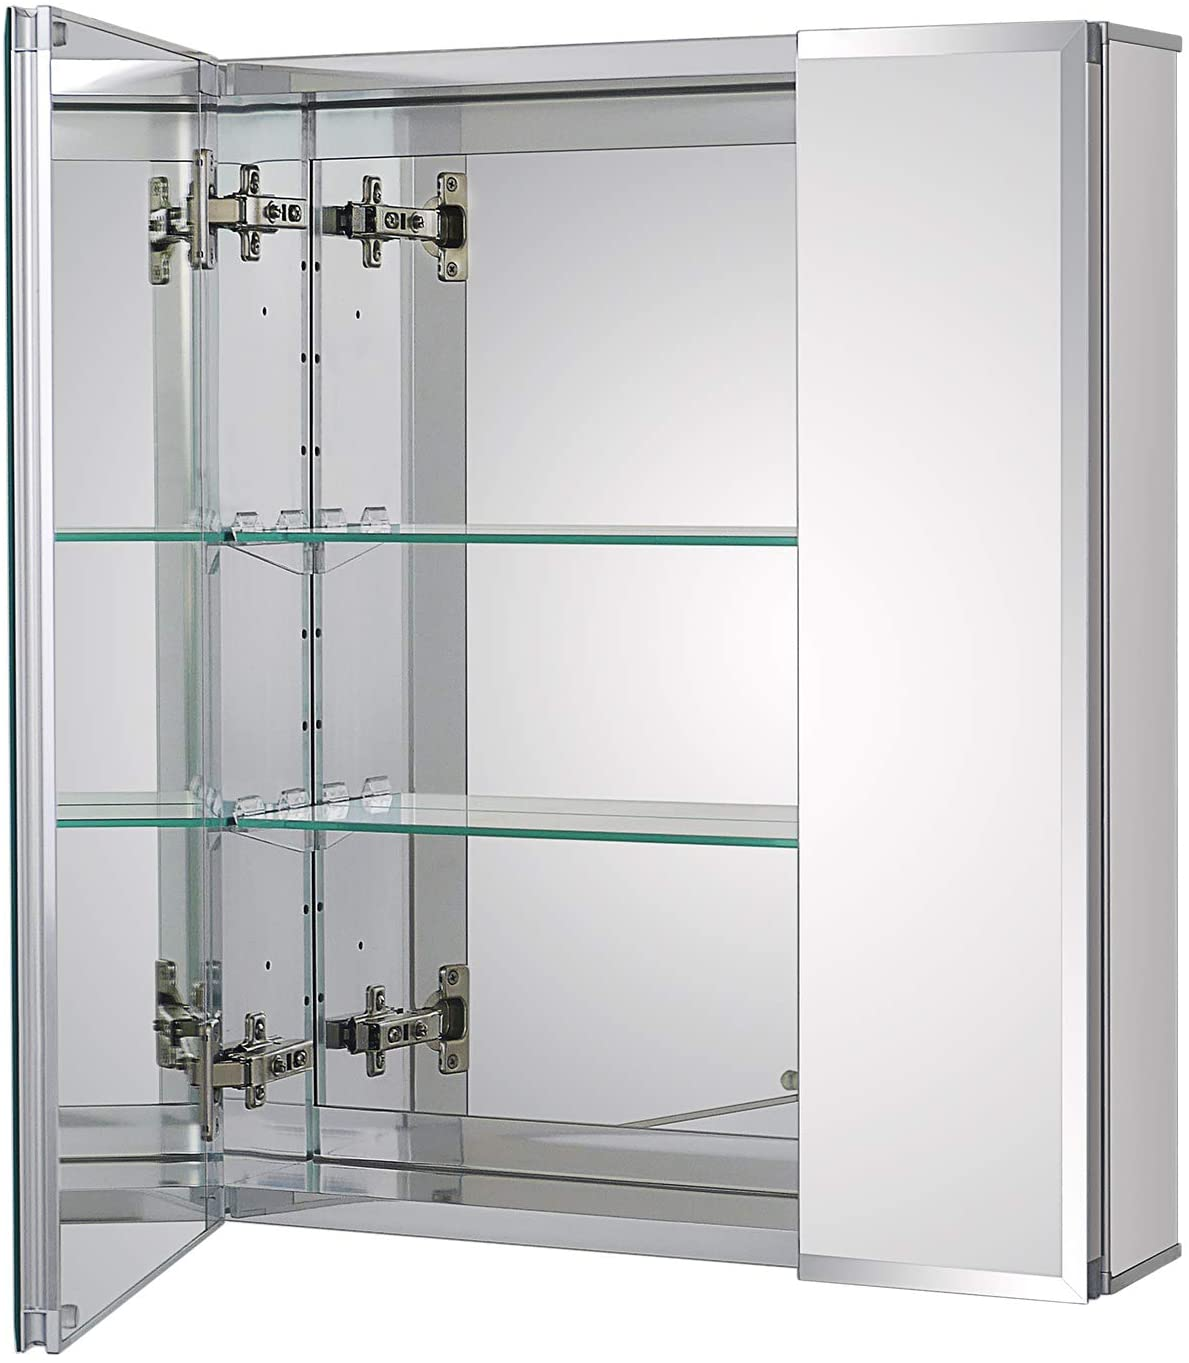 Fundin Aluminum Bathroom Medicine Cabinet with Framless Double Sided Mirror Door20 x 24 Inch Recess or Surface Mount;2 Doors, 20 x 24 x 5.24 inches, Silver